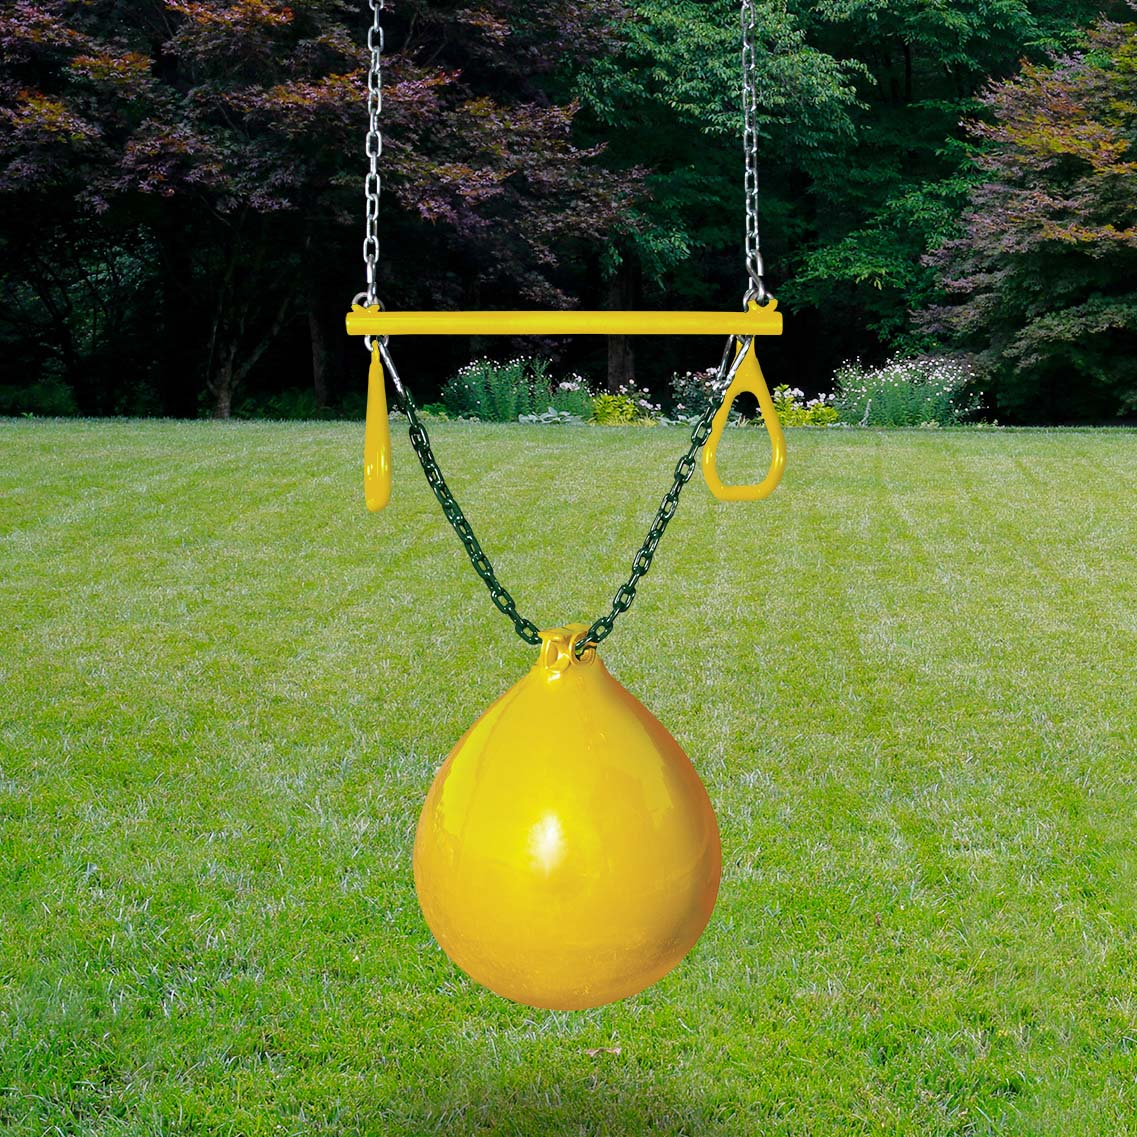 Gorilla-Playsets-Bouy-Ball-W-Trapeze-Yellow